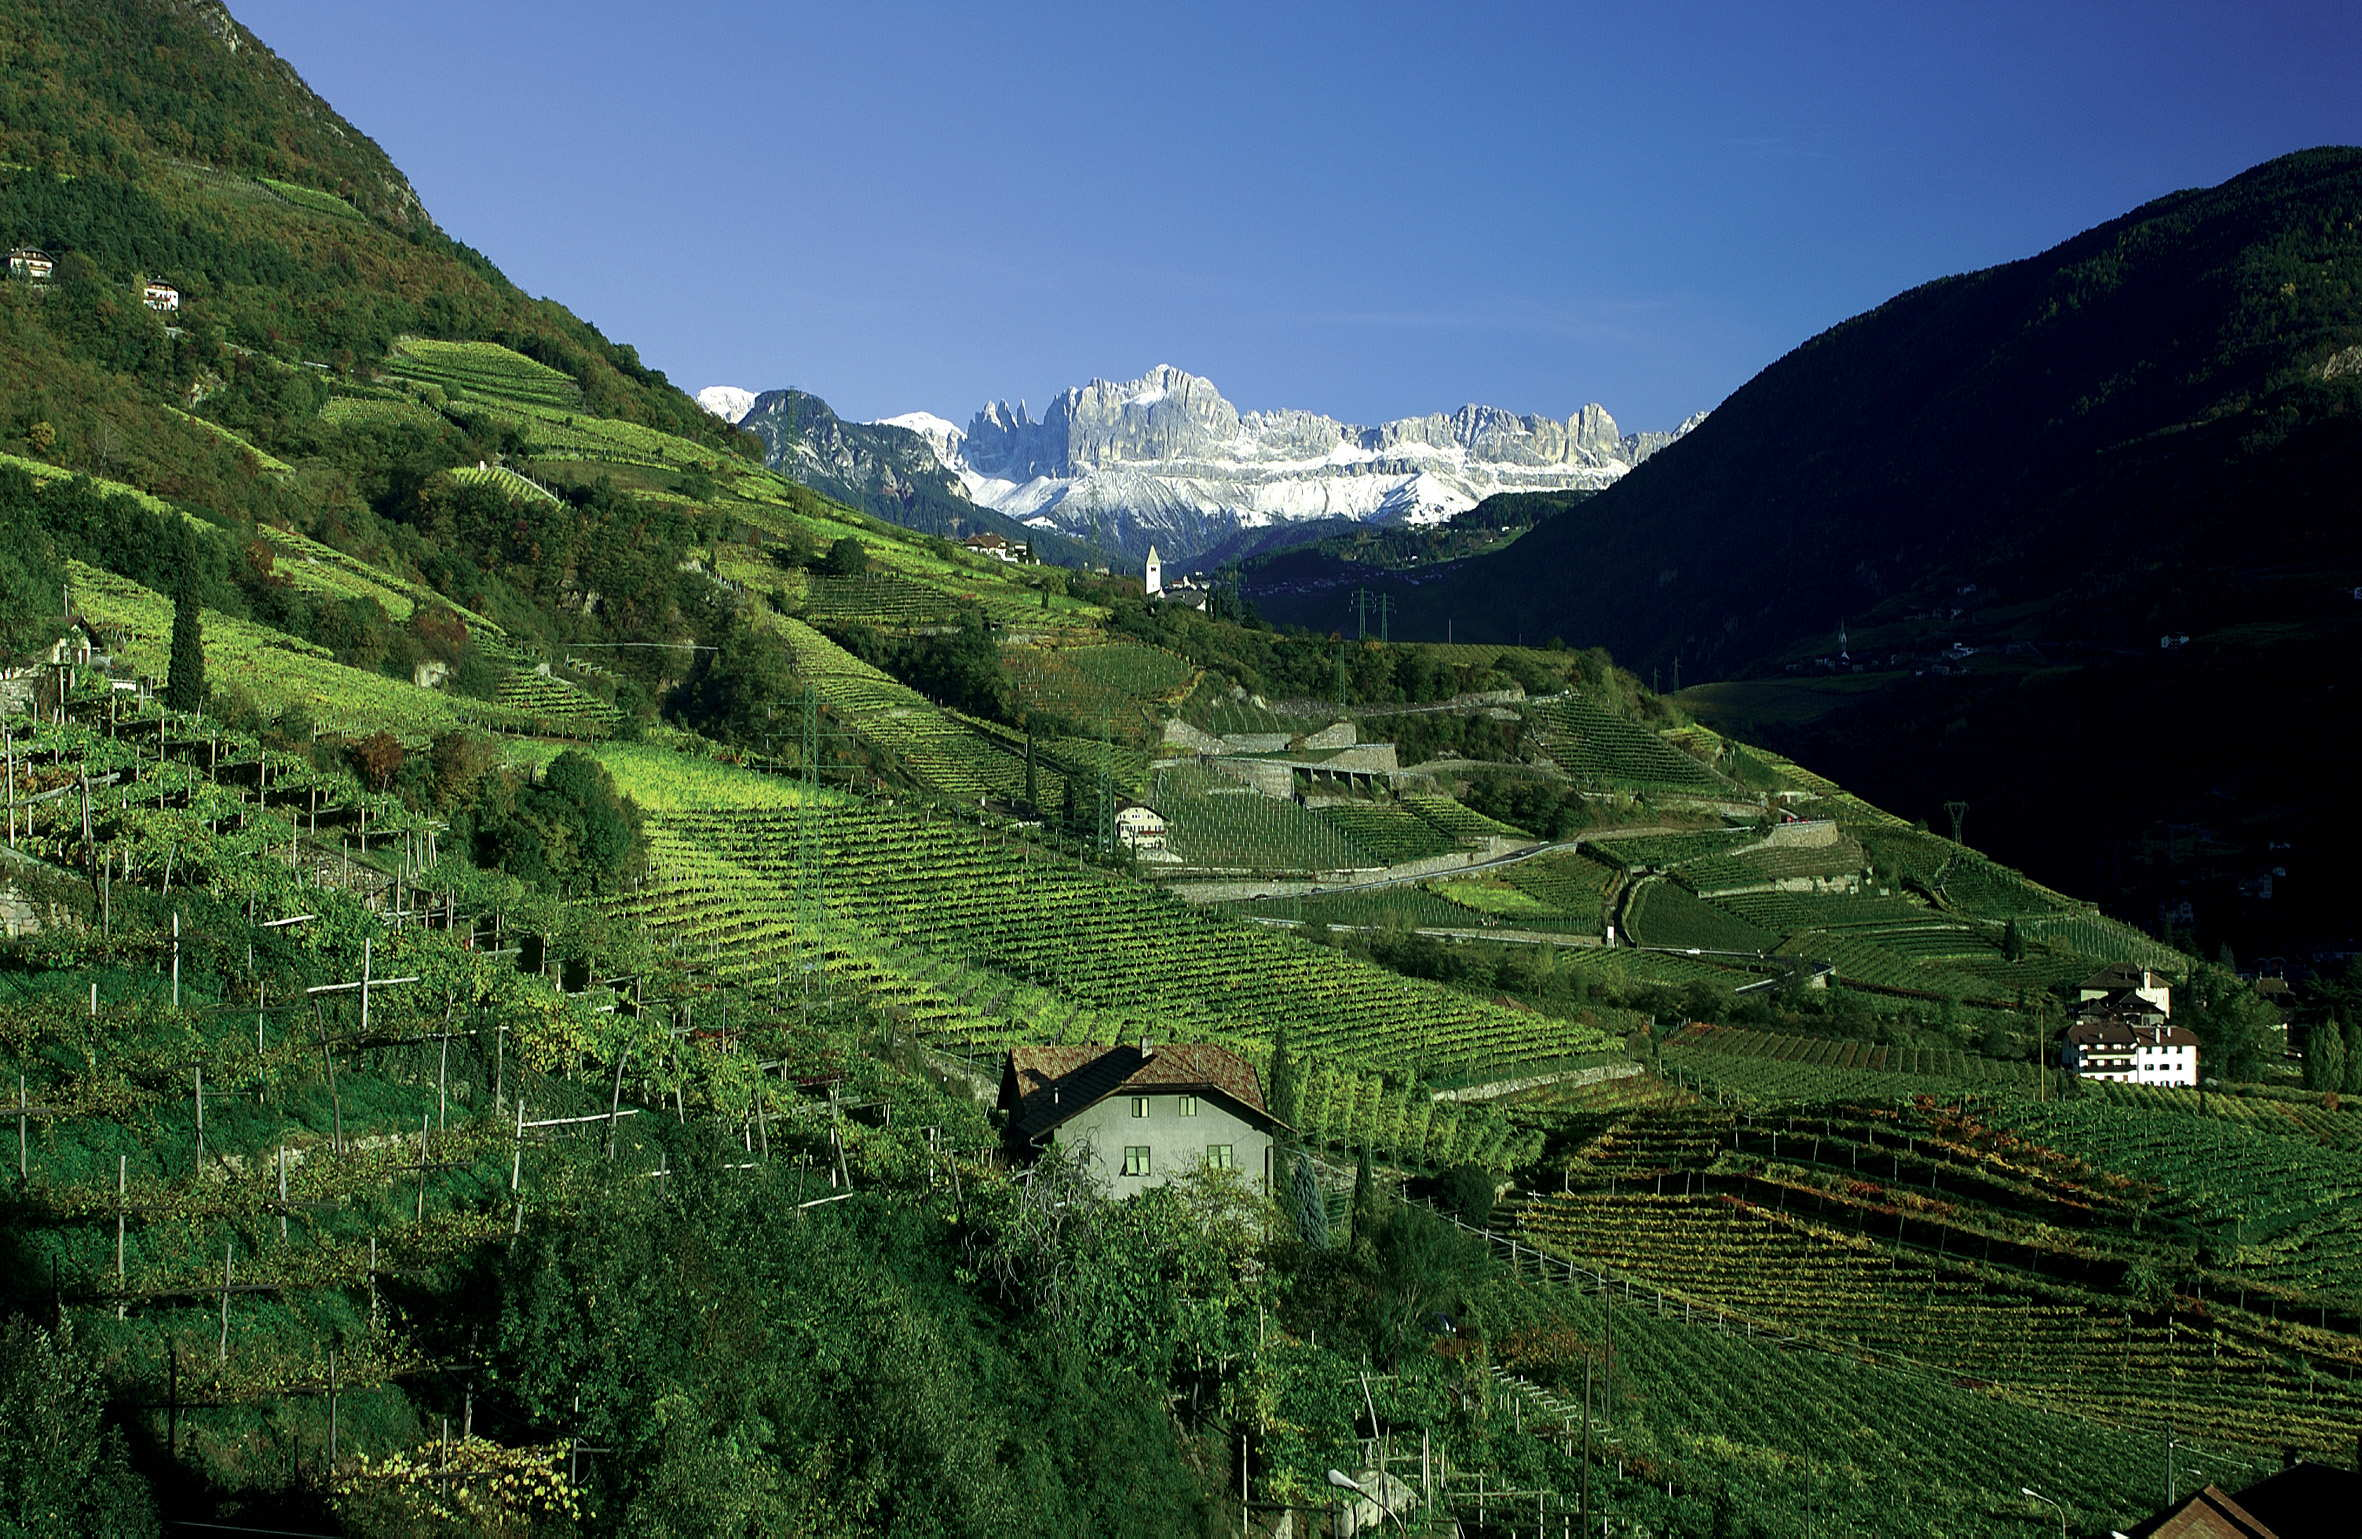 Vineyards in Alto Adige. Photo:www.johnmariani.com